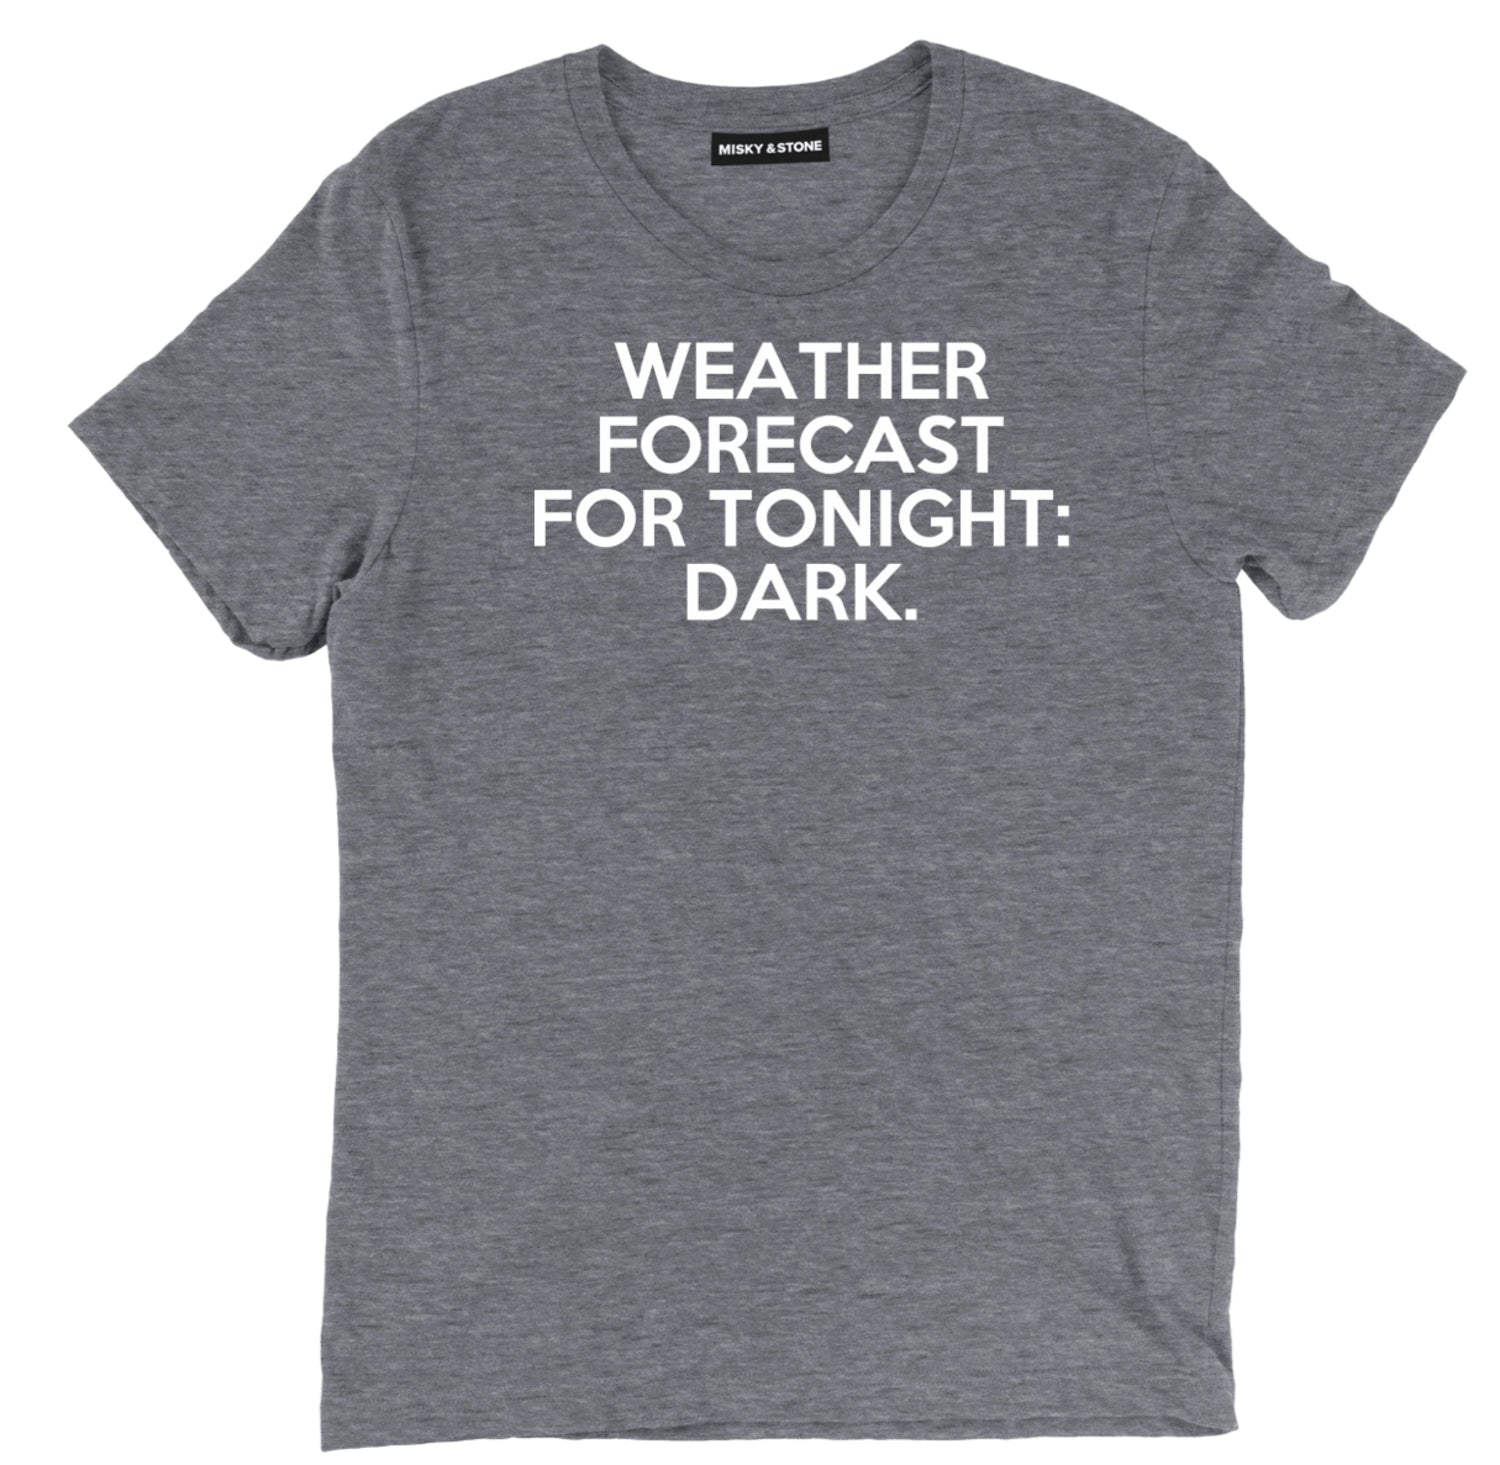 dark weather sarcastic t shirts, weather forecast sarcastic shirts, sarcastic night tee shirts, sarcastic tees, sarcastic t shirt sayings, sarcastic t shirts quotes, funny sarcastic t shirts,